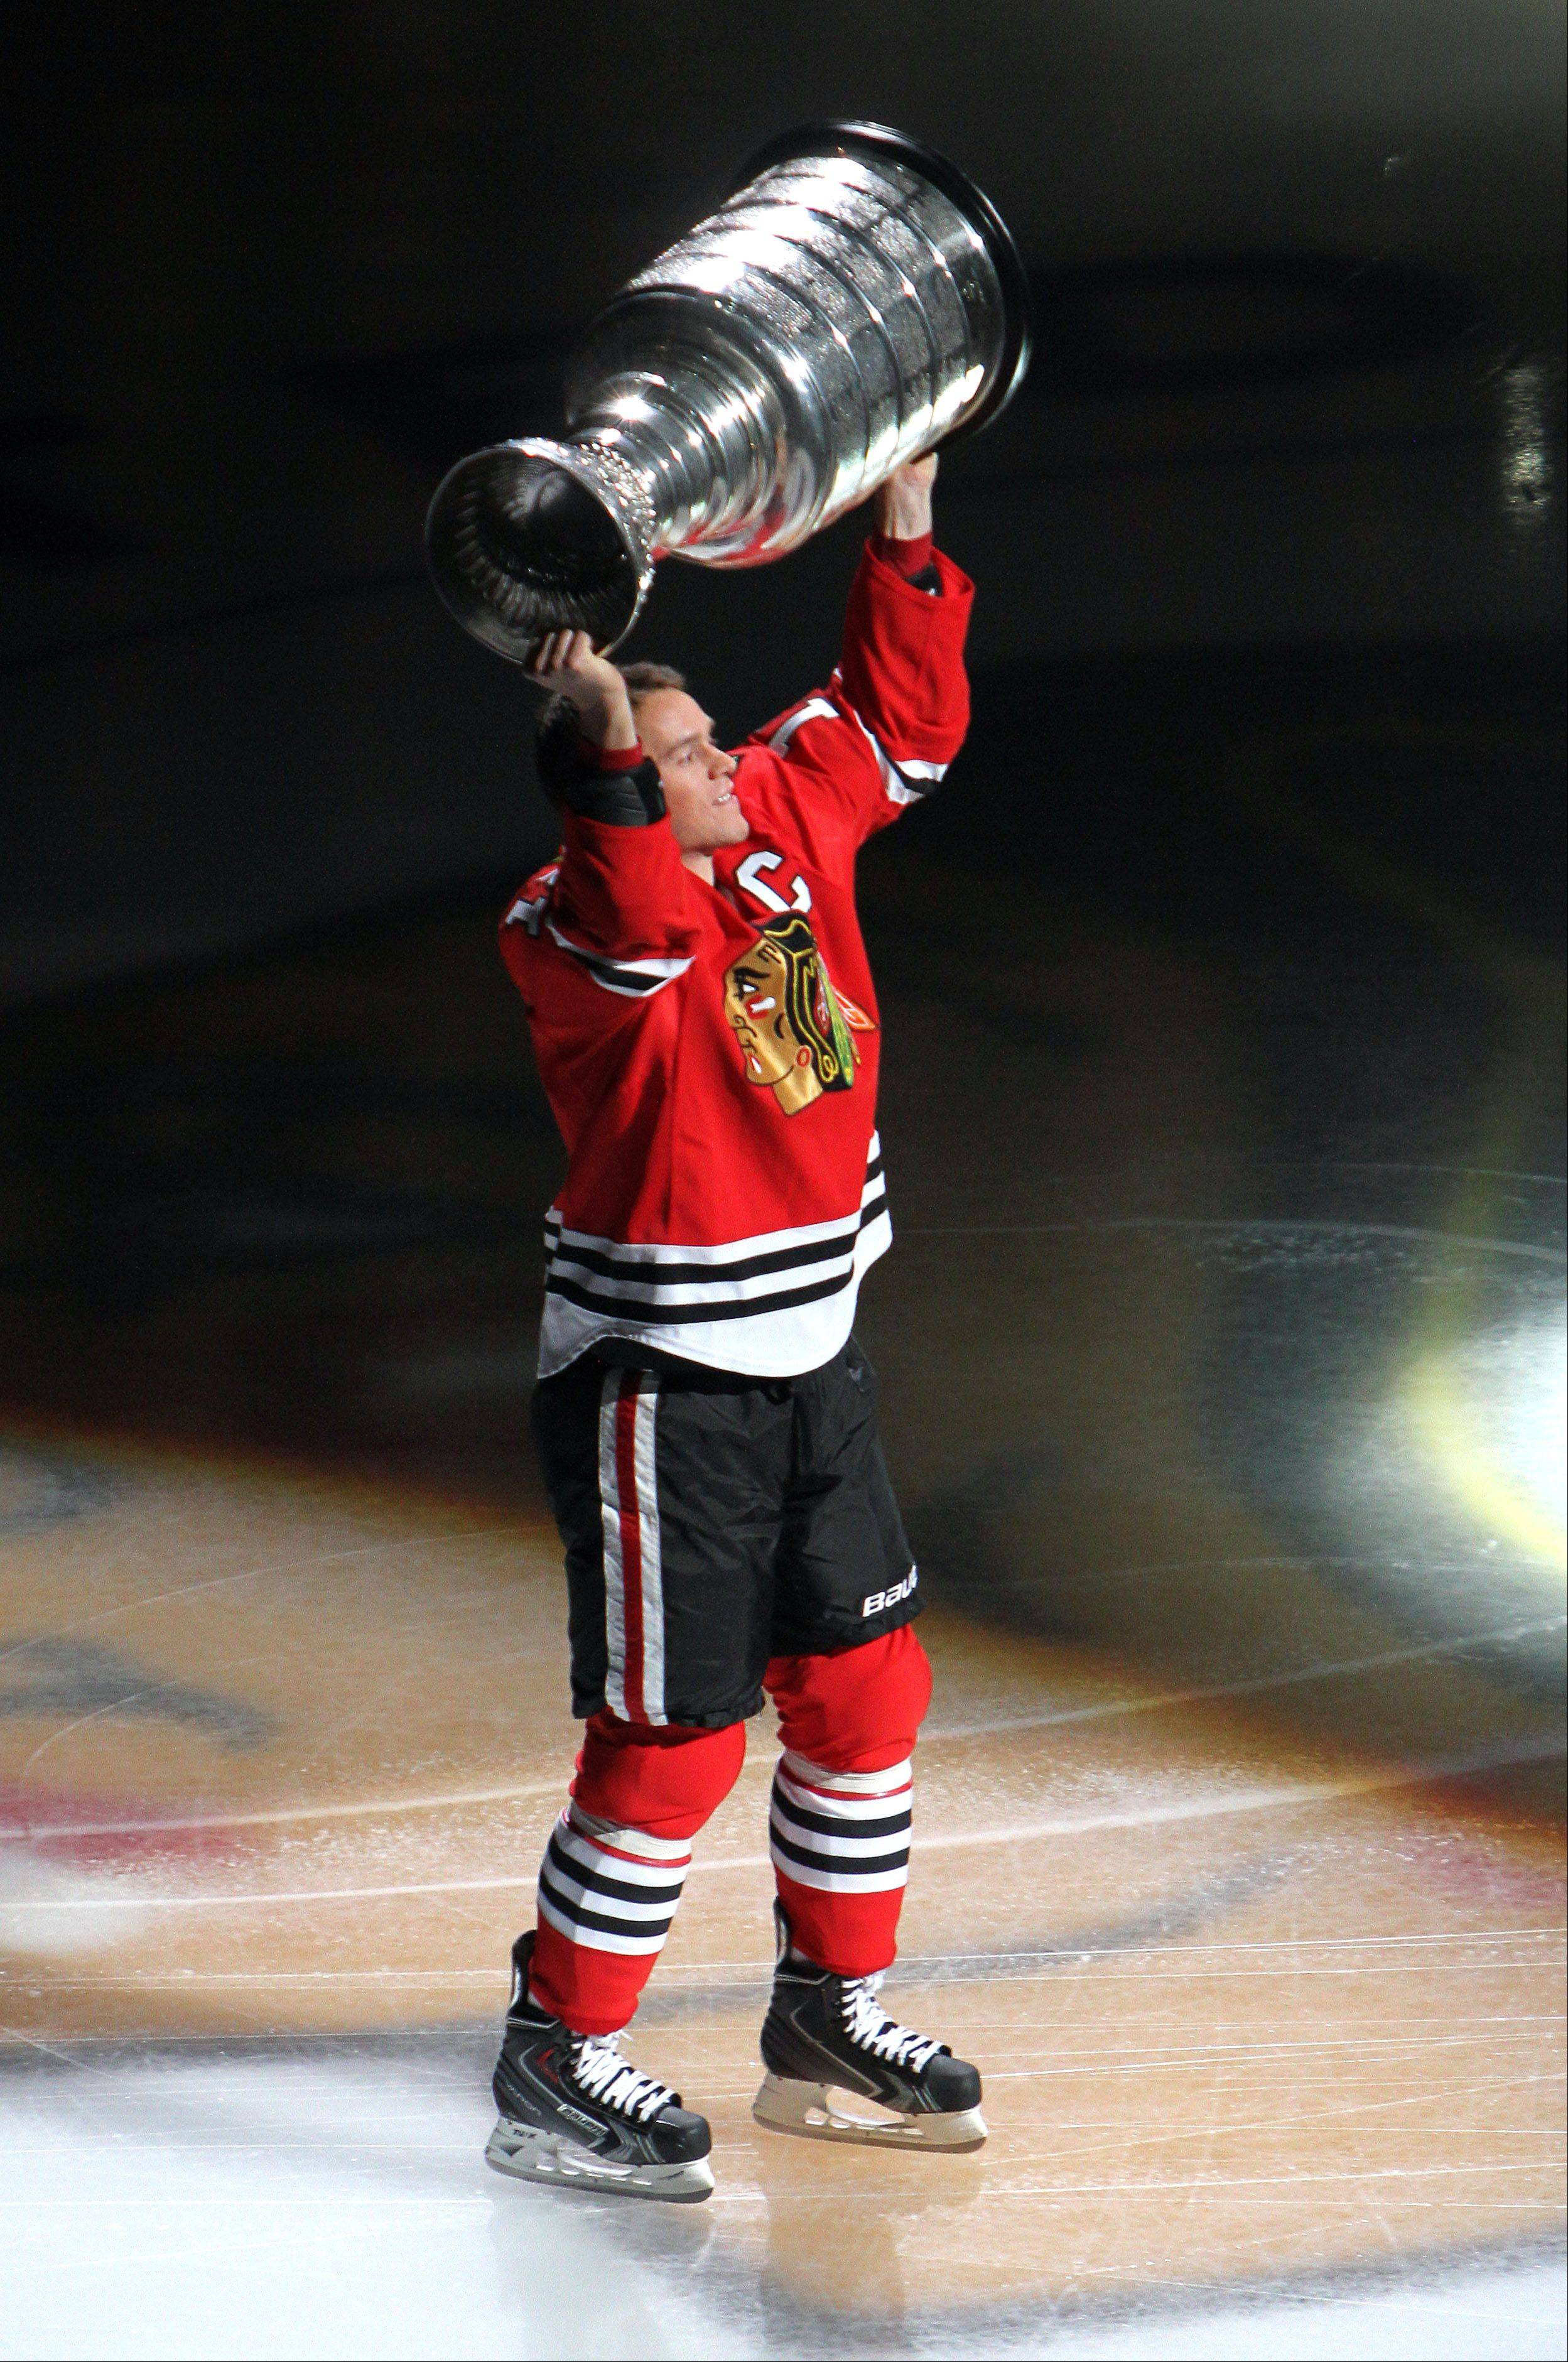 Steve Lundy/slundy@dailyherald.comChicago Blackhawks center Jonathan Toews carries the Stanley Cup over his head during a banner ceremony prior to their opening-day-game against the Washington Capitals Tuesday at the United Center in Chicago.